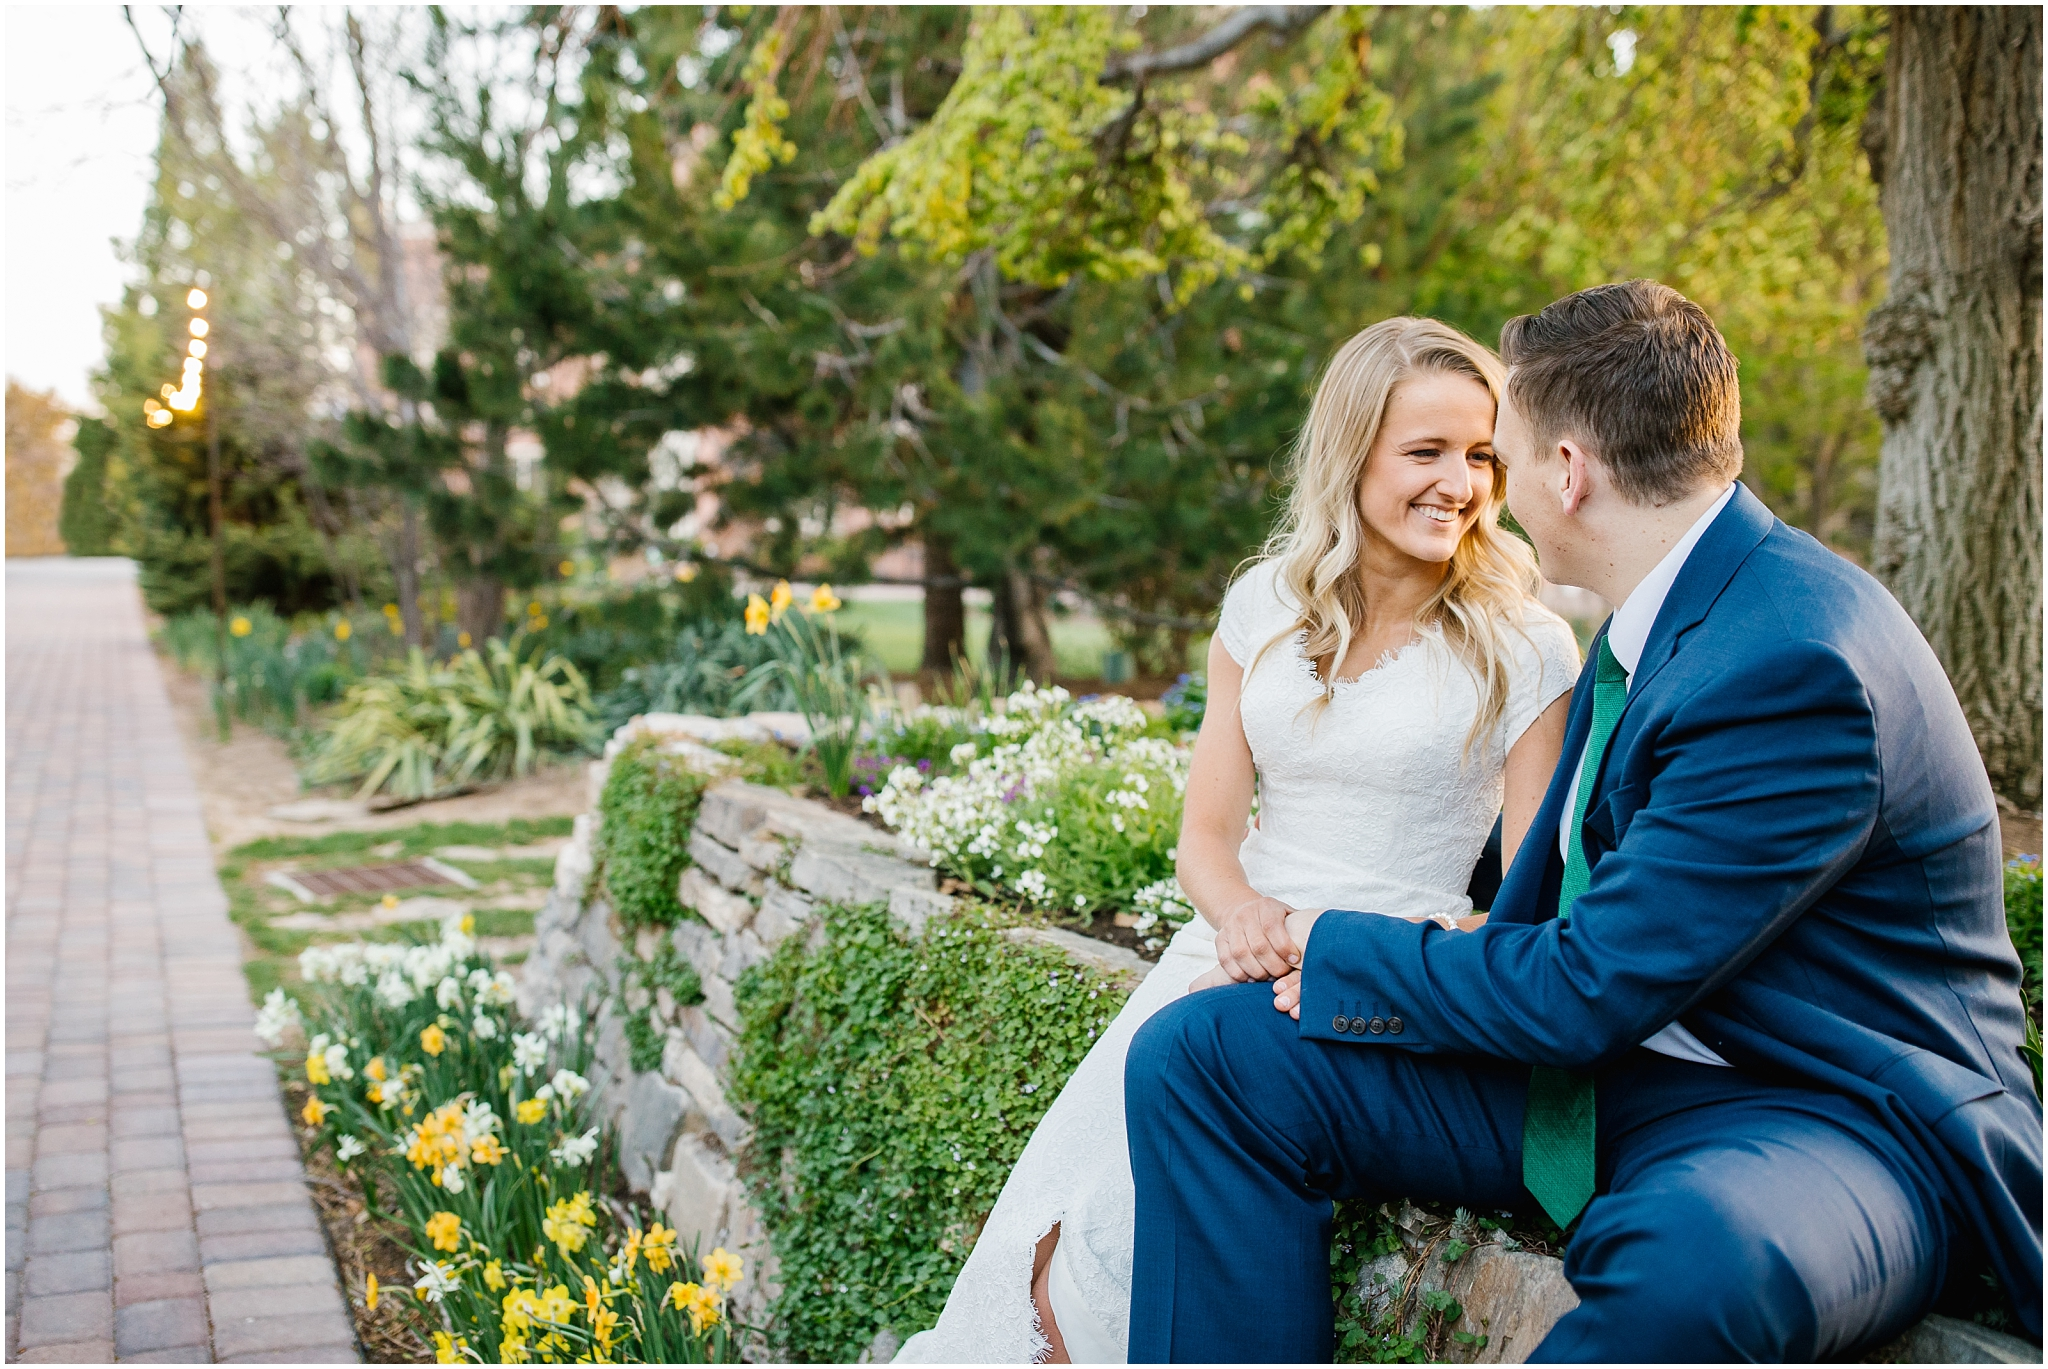 Lizzie-B-Imagery-Utah-Wedding-Photographer-Thanksgiving-Point-Payson-Temple_0022.jpg